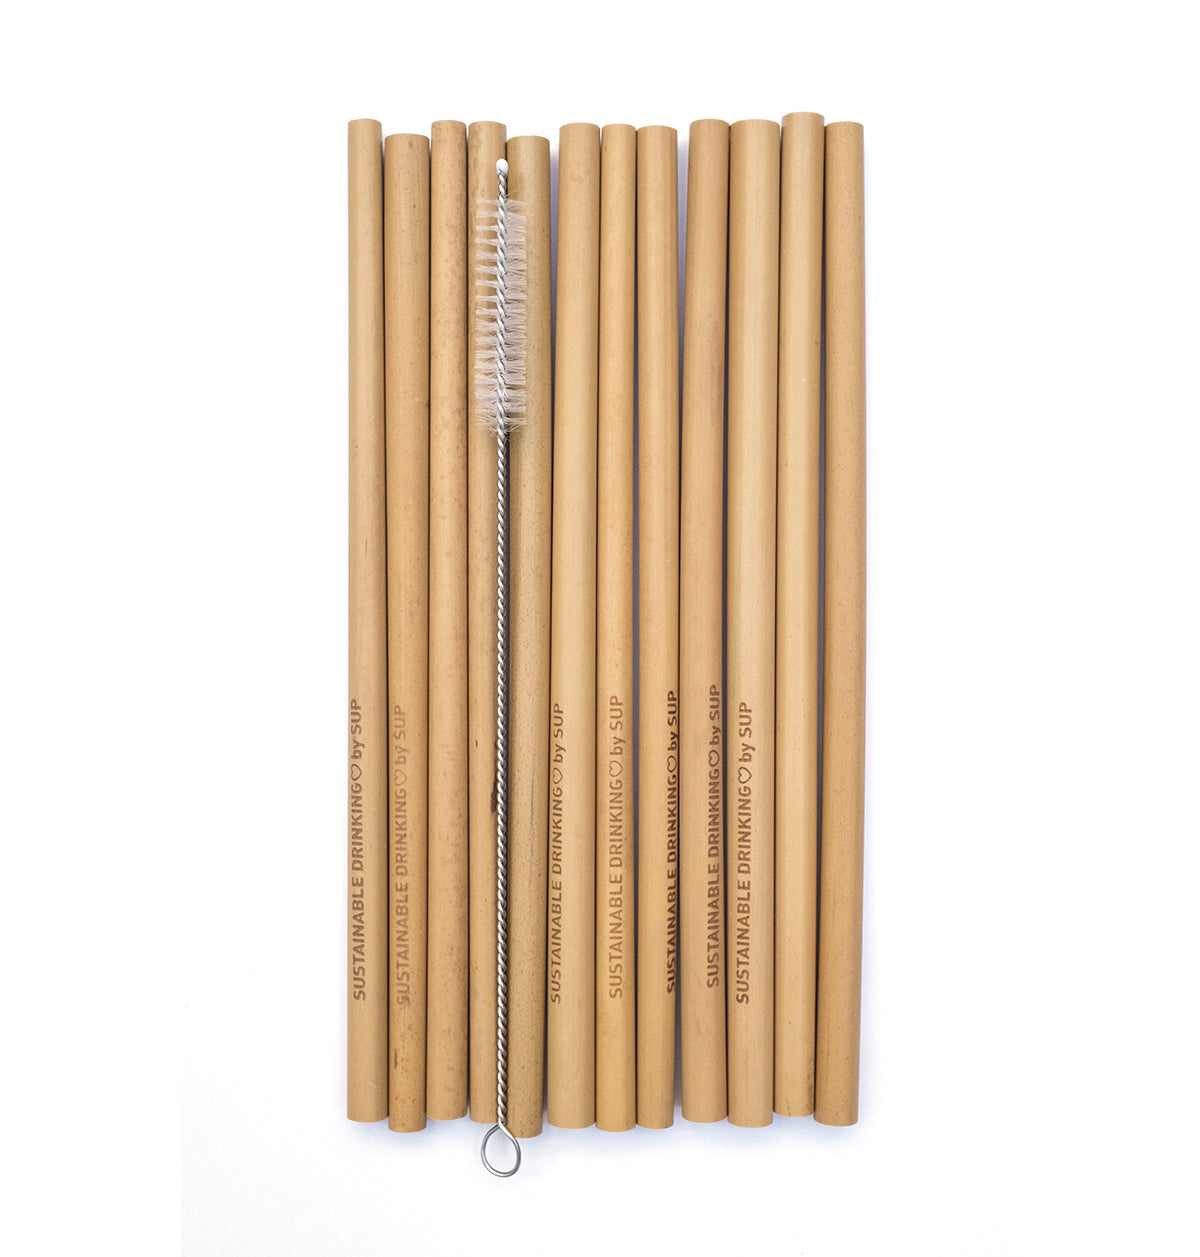 Bamboo Drinking Straws - Pack of 12 with cleaning brush